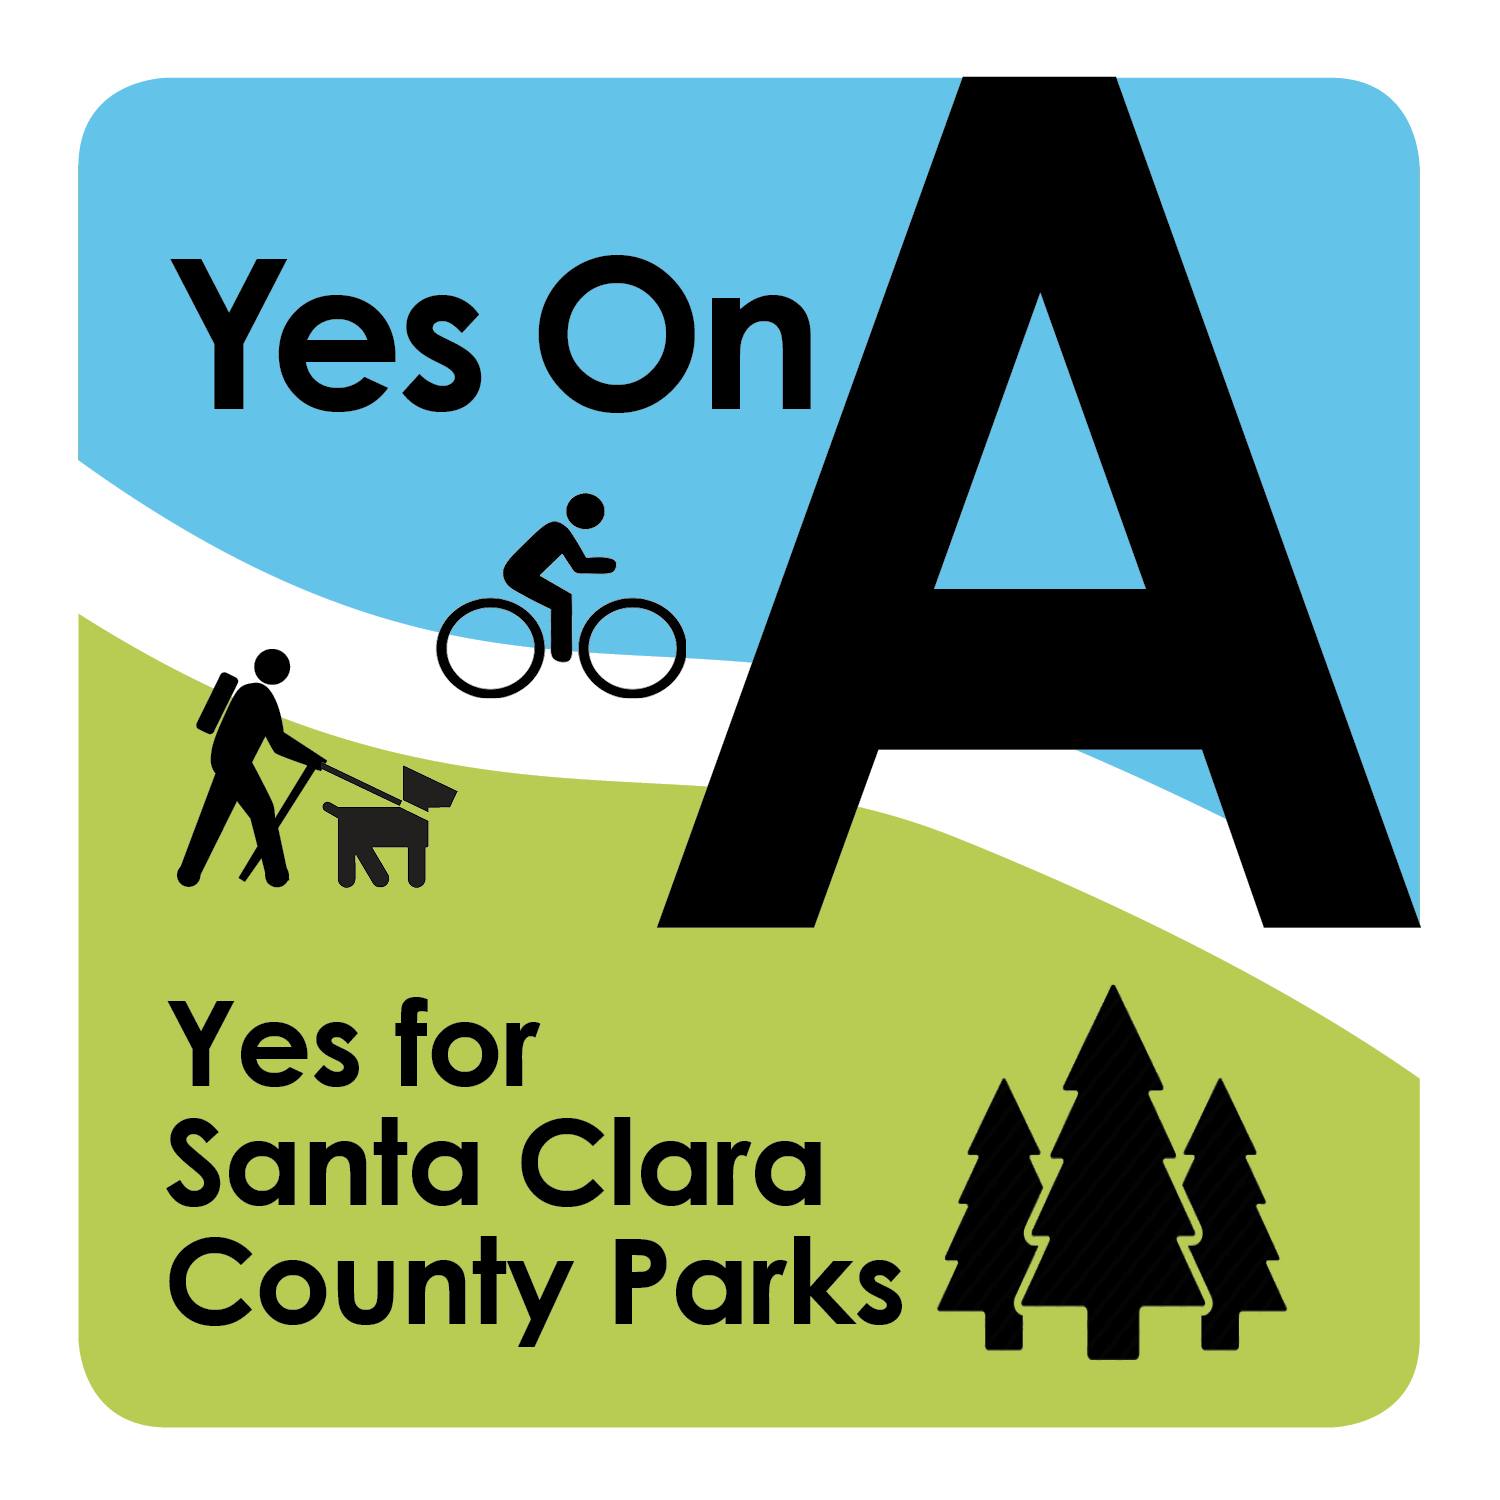 Yes On Parks logo